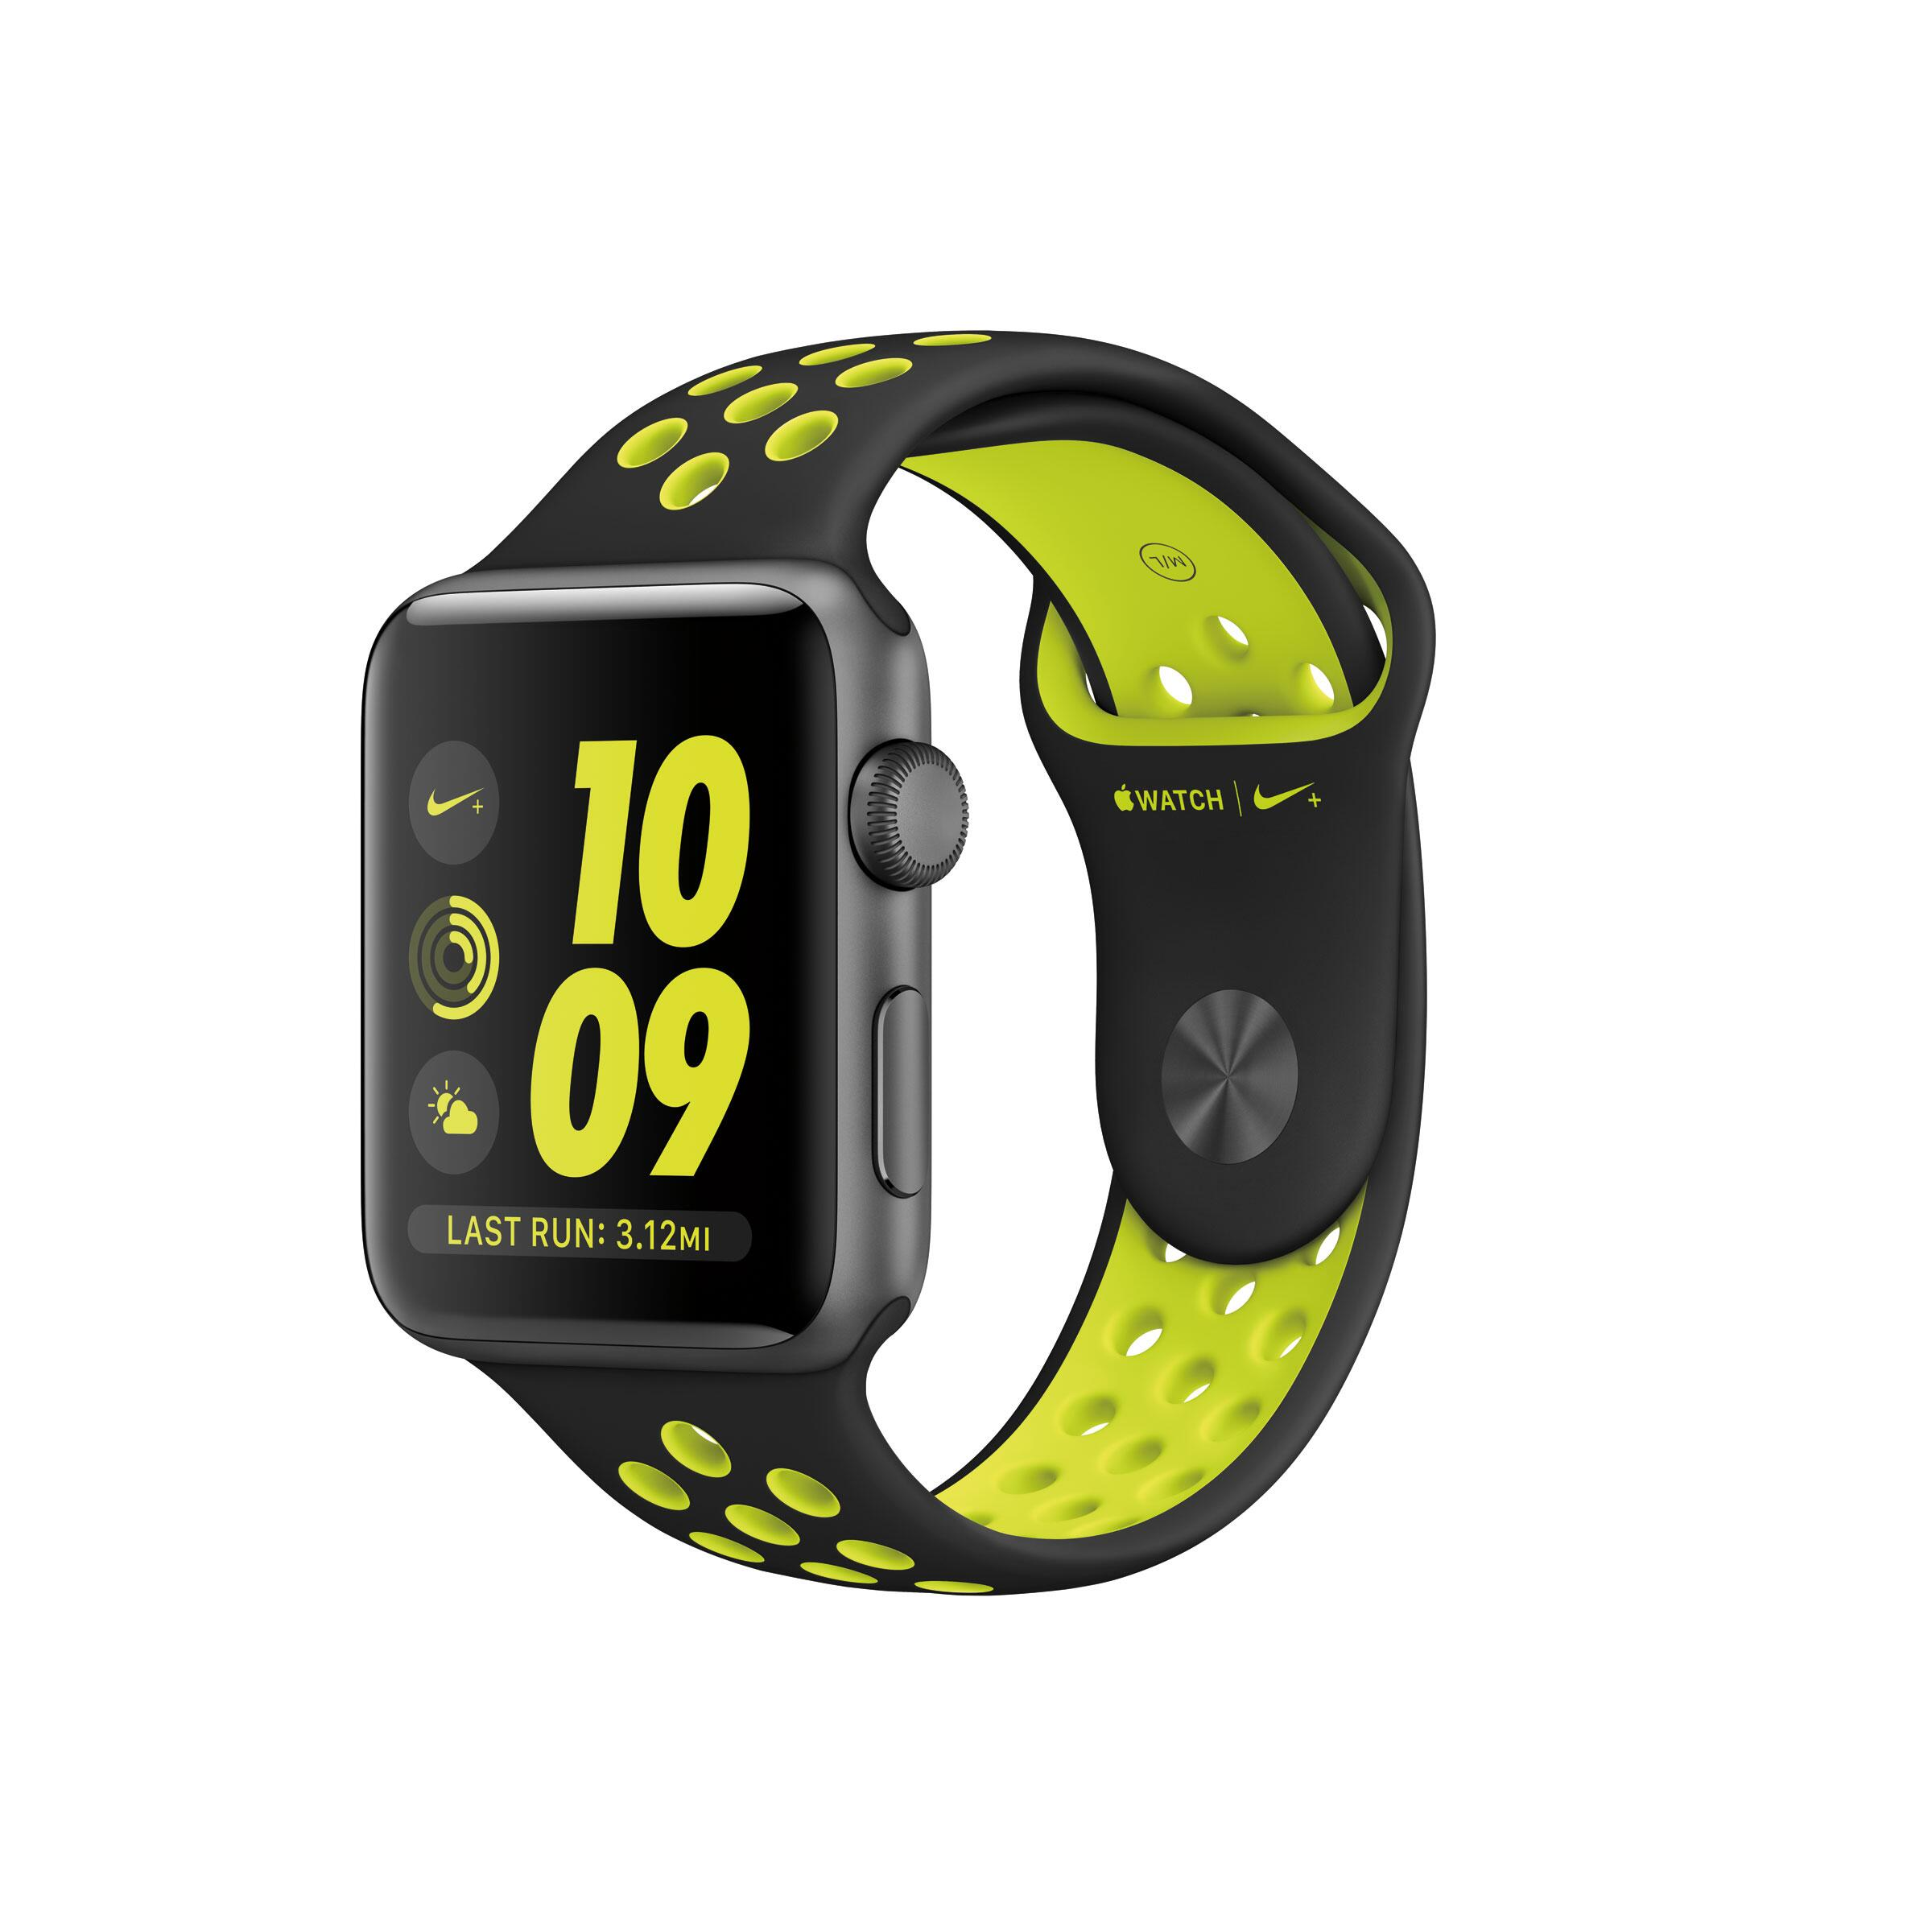 Bild zu Apple Watch Series 2